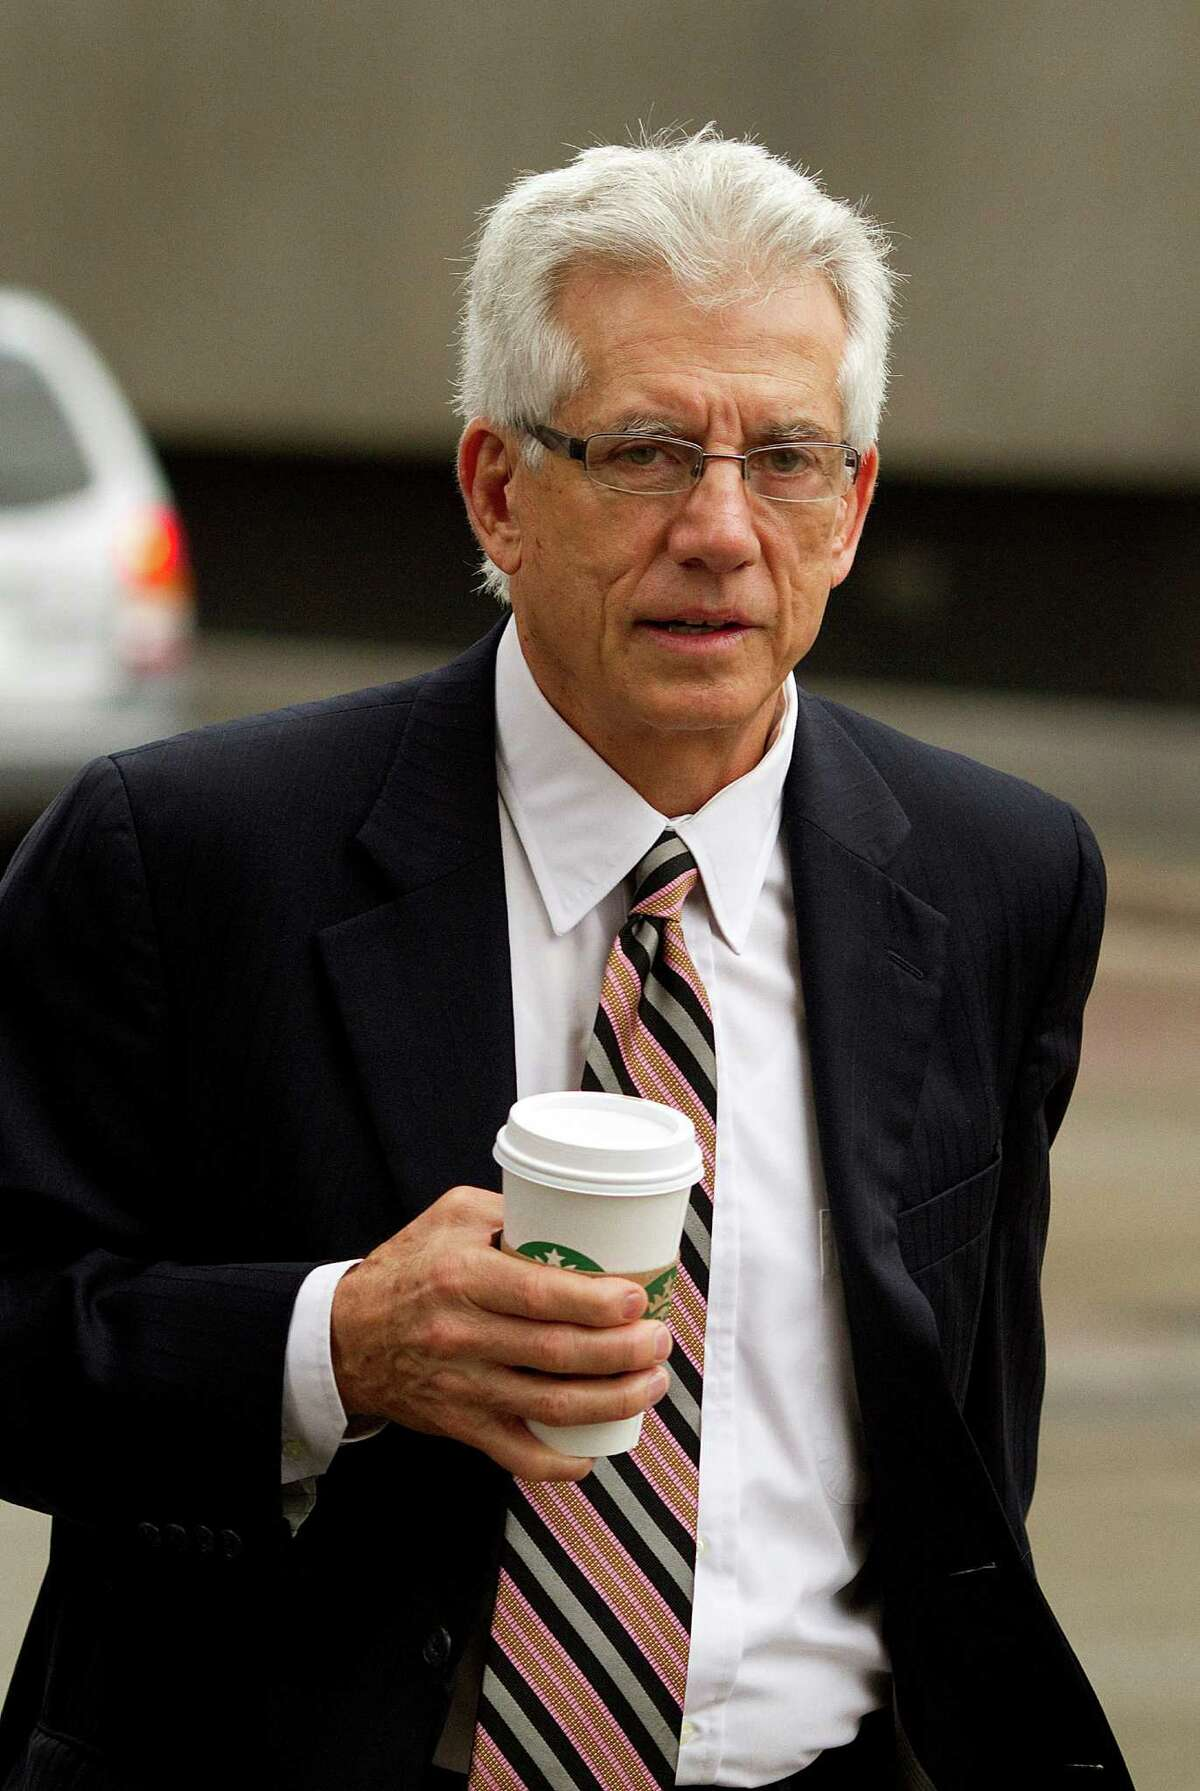 James Davis, former chief financial officer of Stanford Financial Group Co., arrives at court in February 2012. Davis could be given probation or sentenced to as many as 30 years in prison at his sentencing Tuesday. Davis has asked for a sentence of no more than four years in prison.